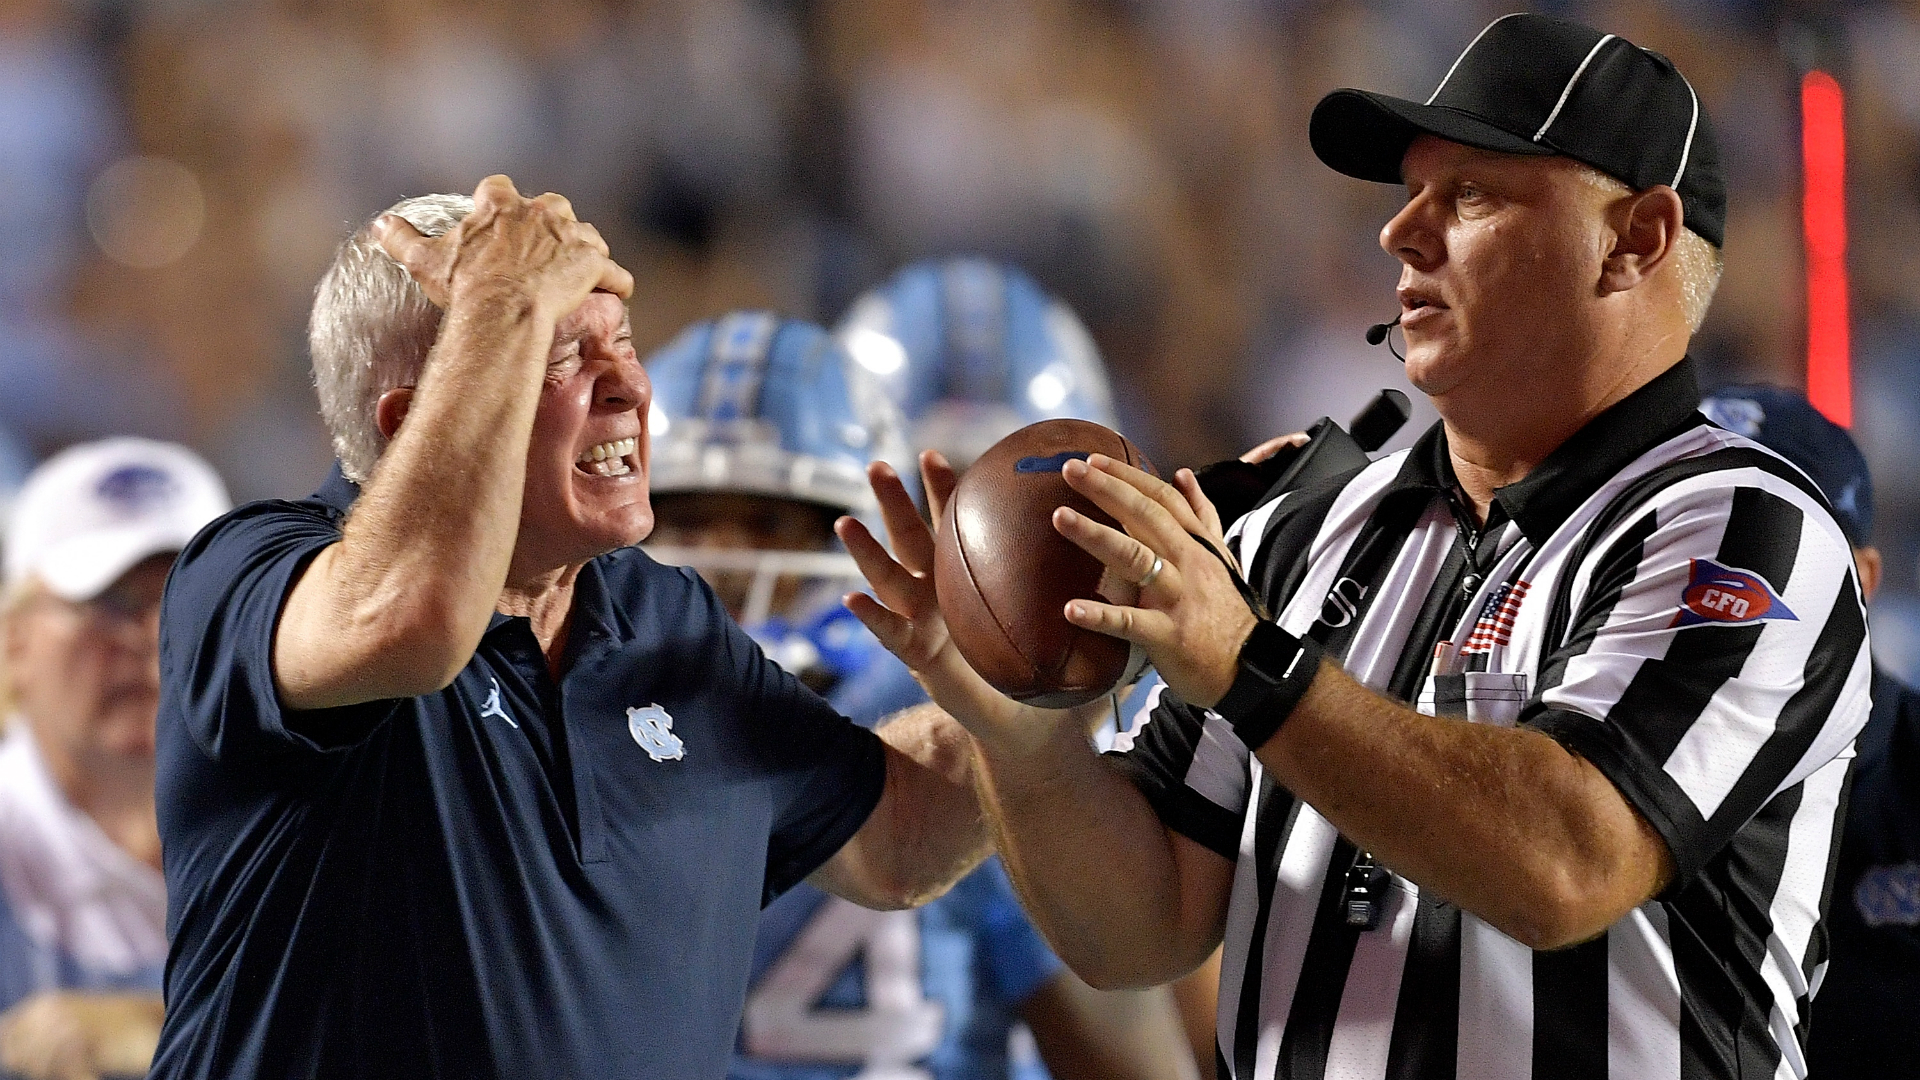 Referees ended Wake Forest vs. UNC game early, ACC says